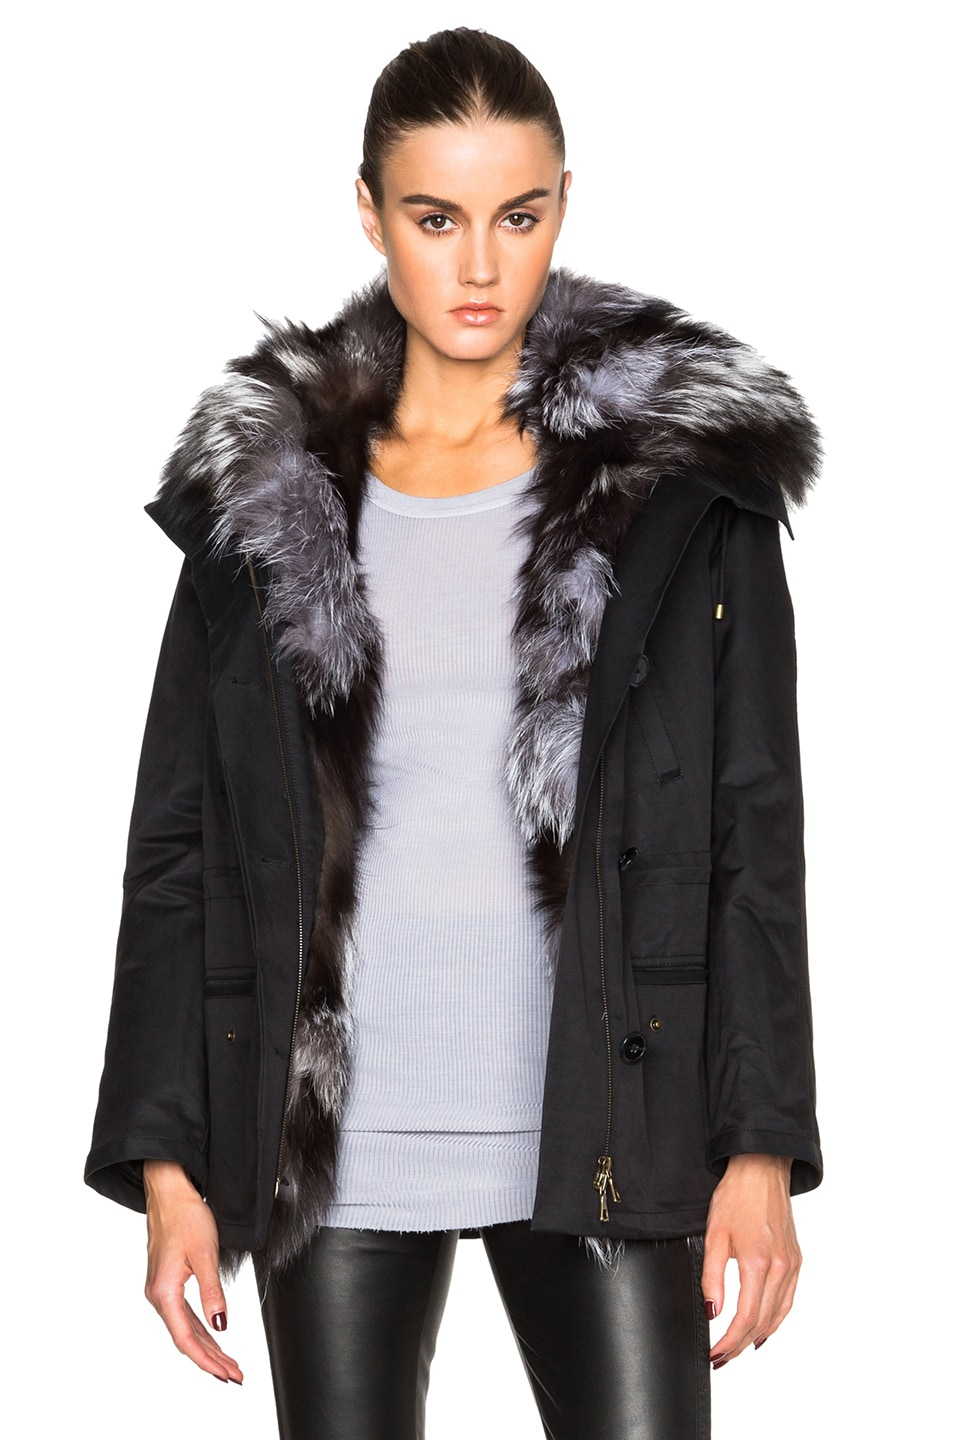 88aeab335376 Image 1 of Yves Salomon - Army Short Gap Parka With Fox Fur in Noir Argente